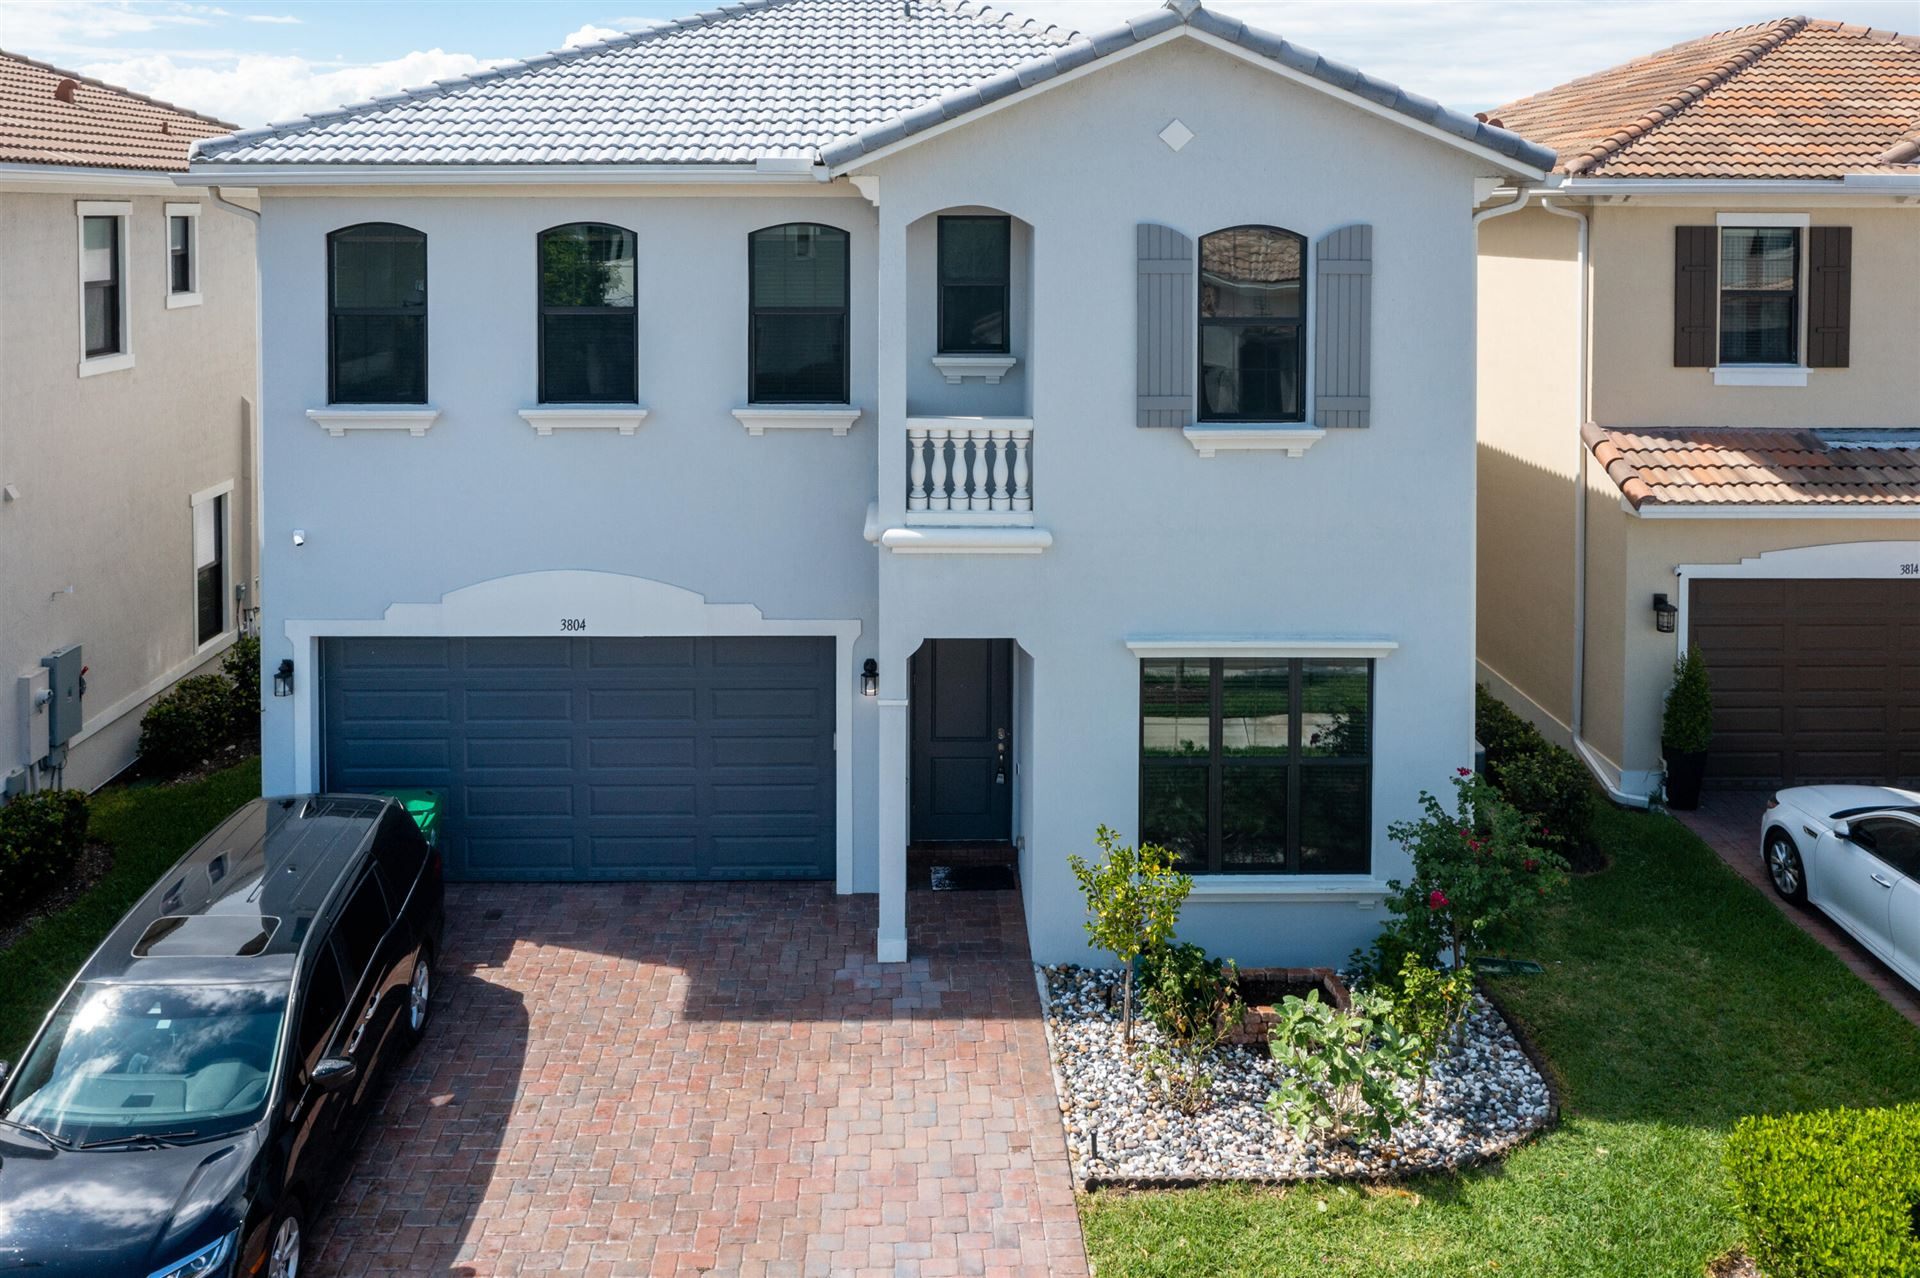 Photo of 3804 NW 89th Way, Coral Springs, FL 33065 (MLS # RX-10752219)